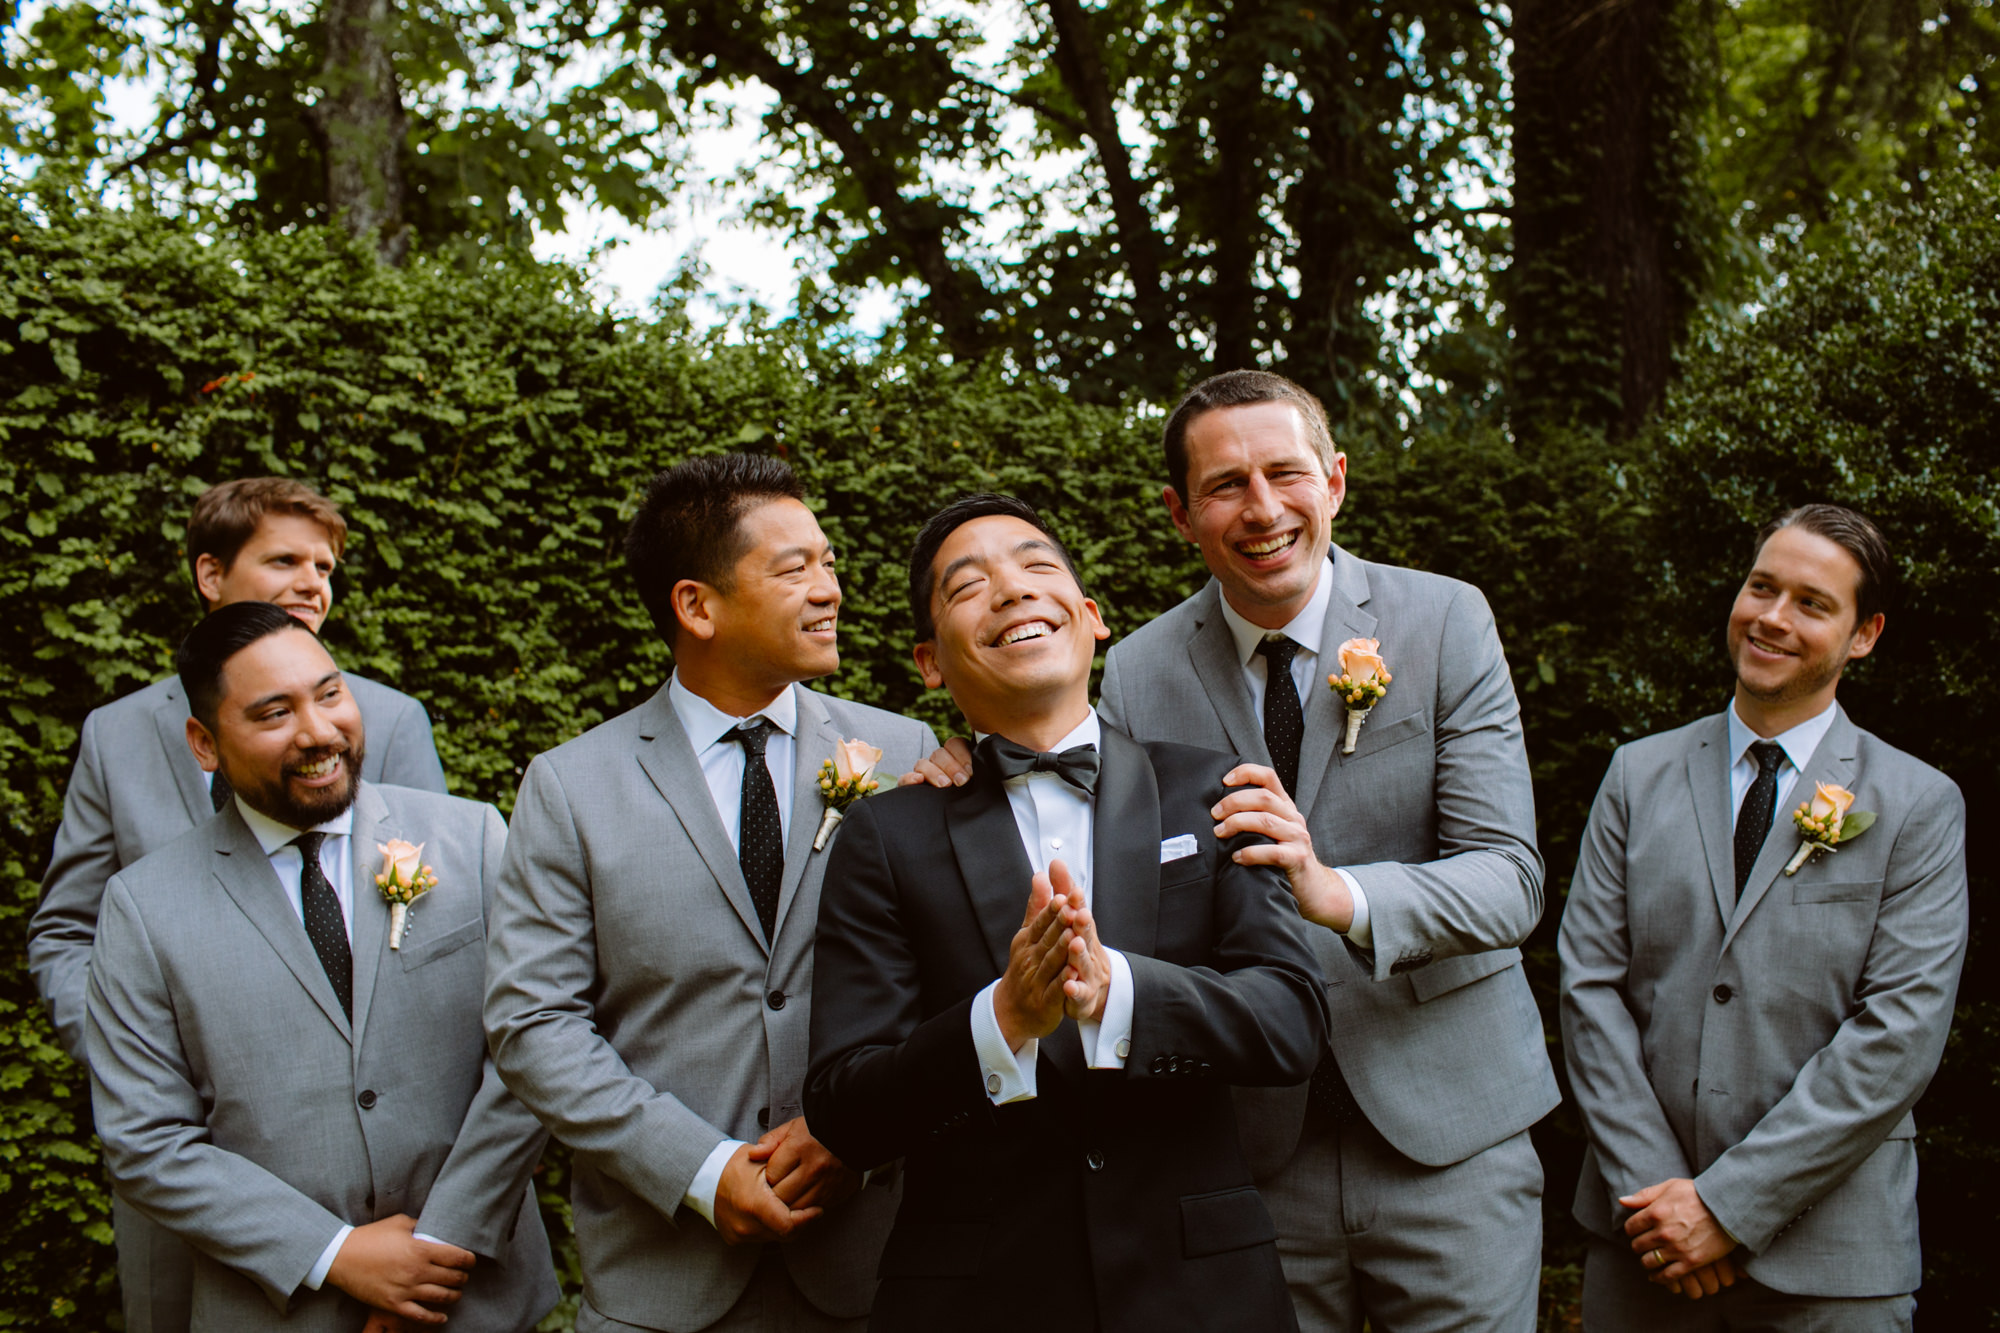 Happy  portrait of groom and groomsmen laughing - Jessica Hill Photography